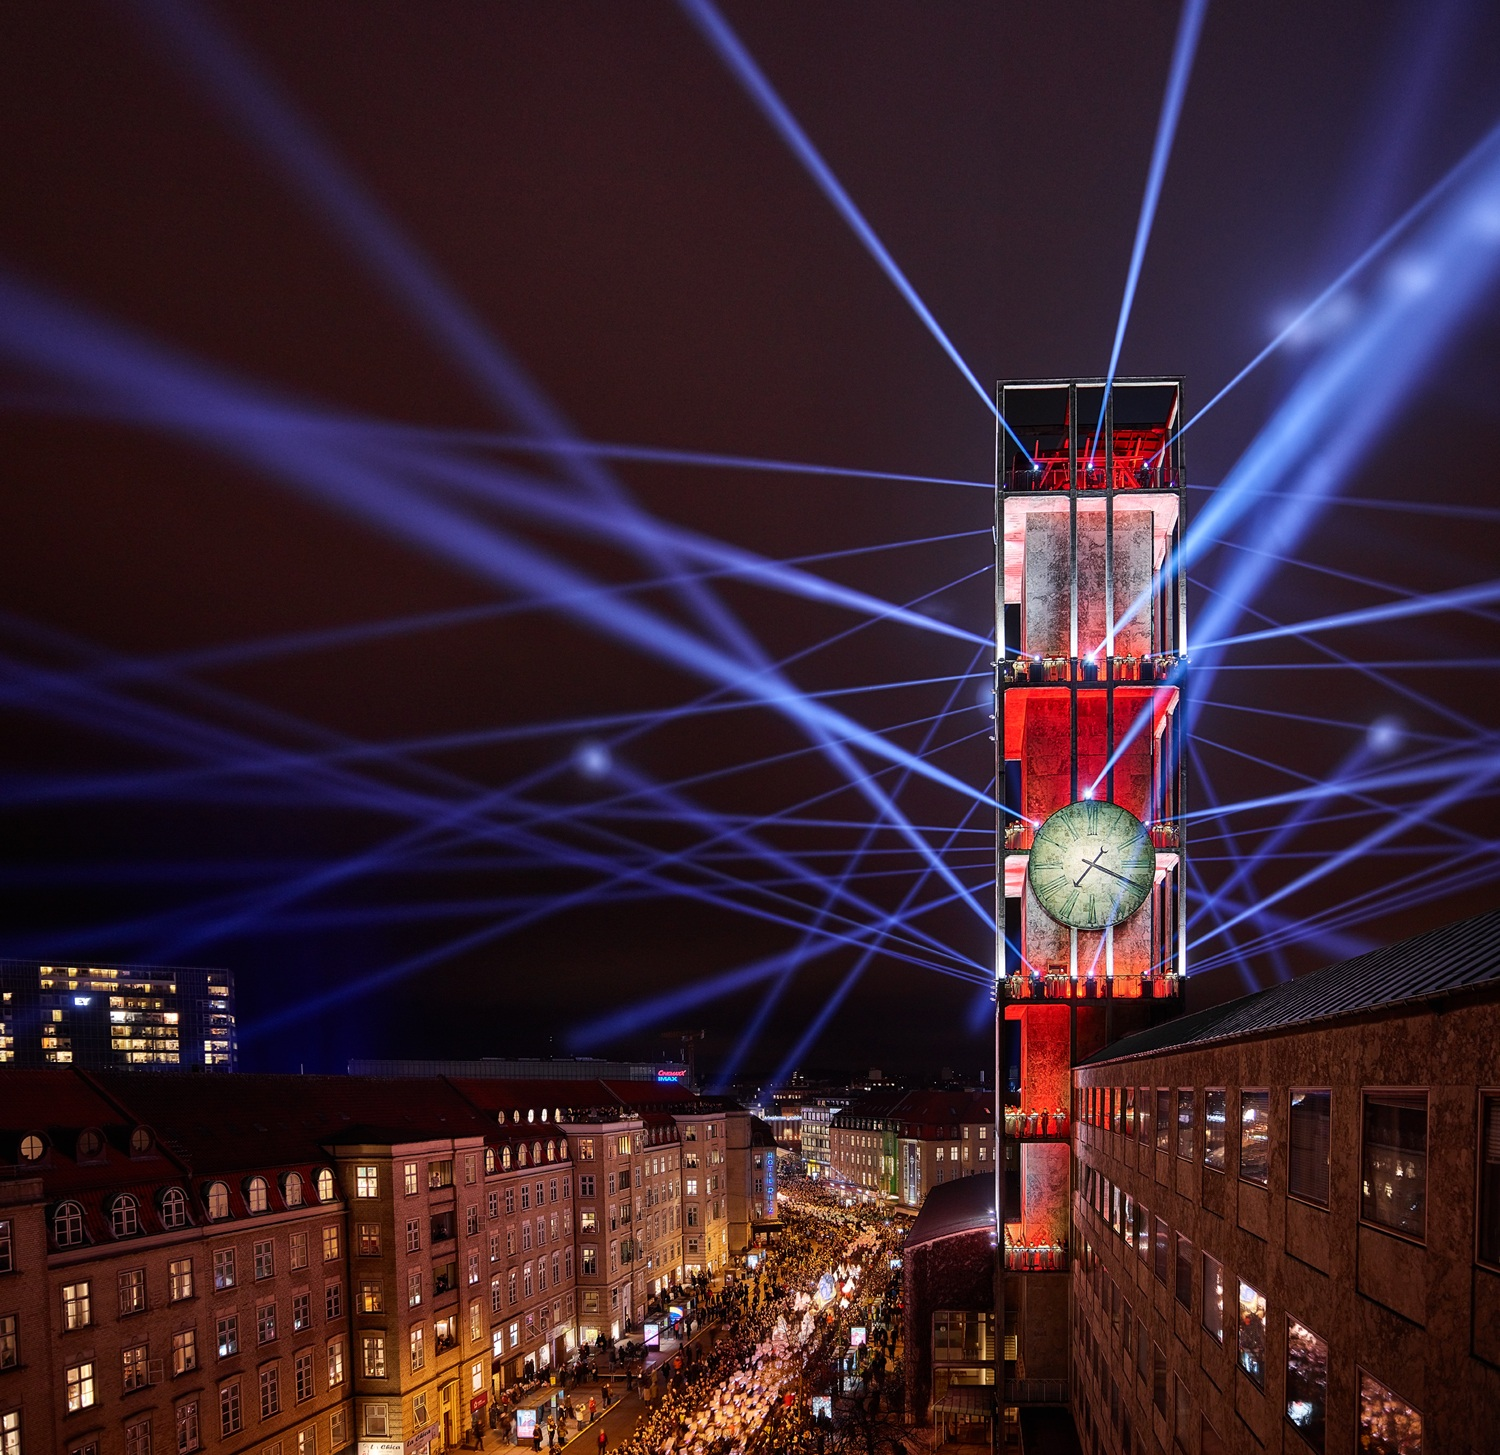 The opening ceremony for Aarhus' European Capital of Culture program included an impressive light show.